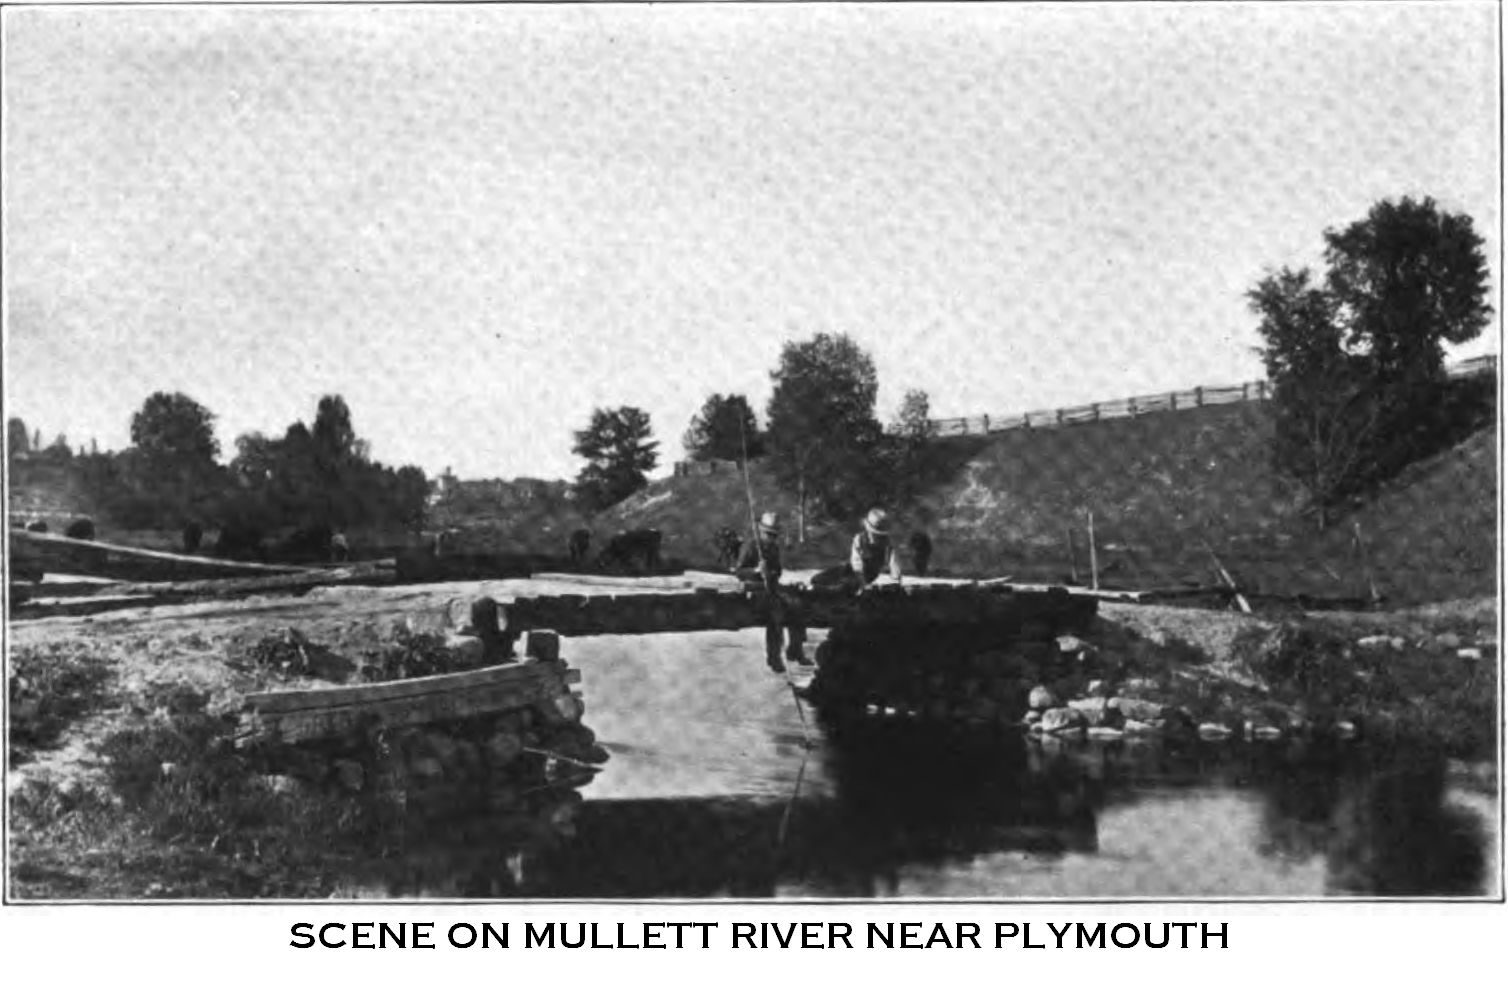 Scene on Mullett River